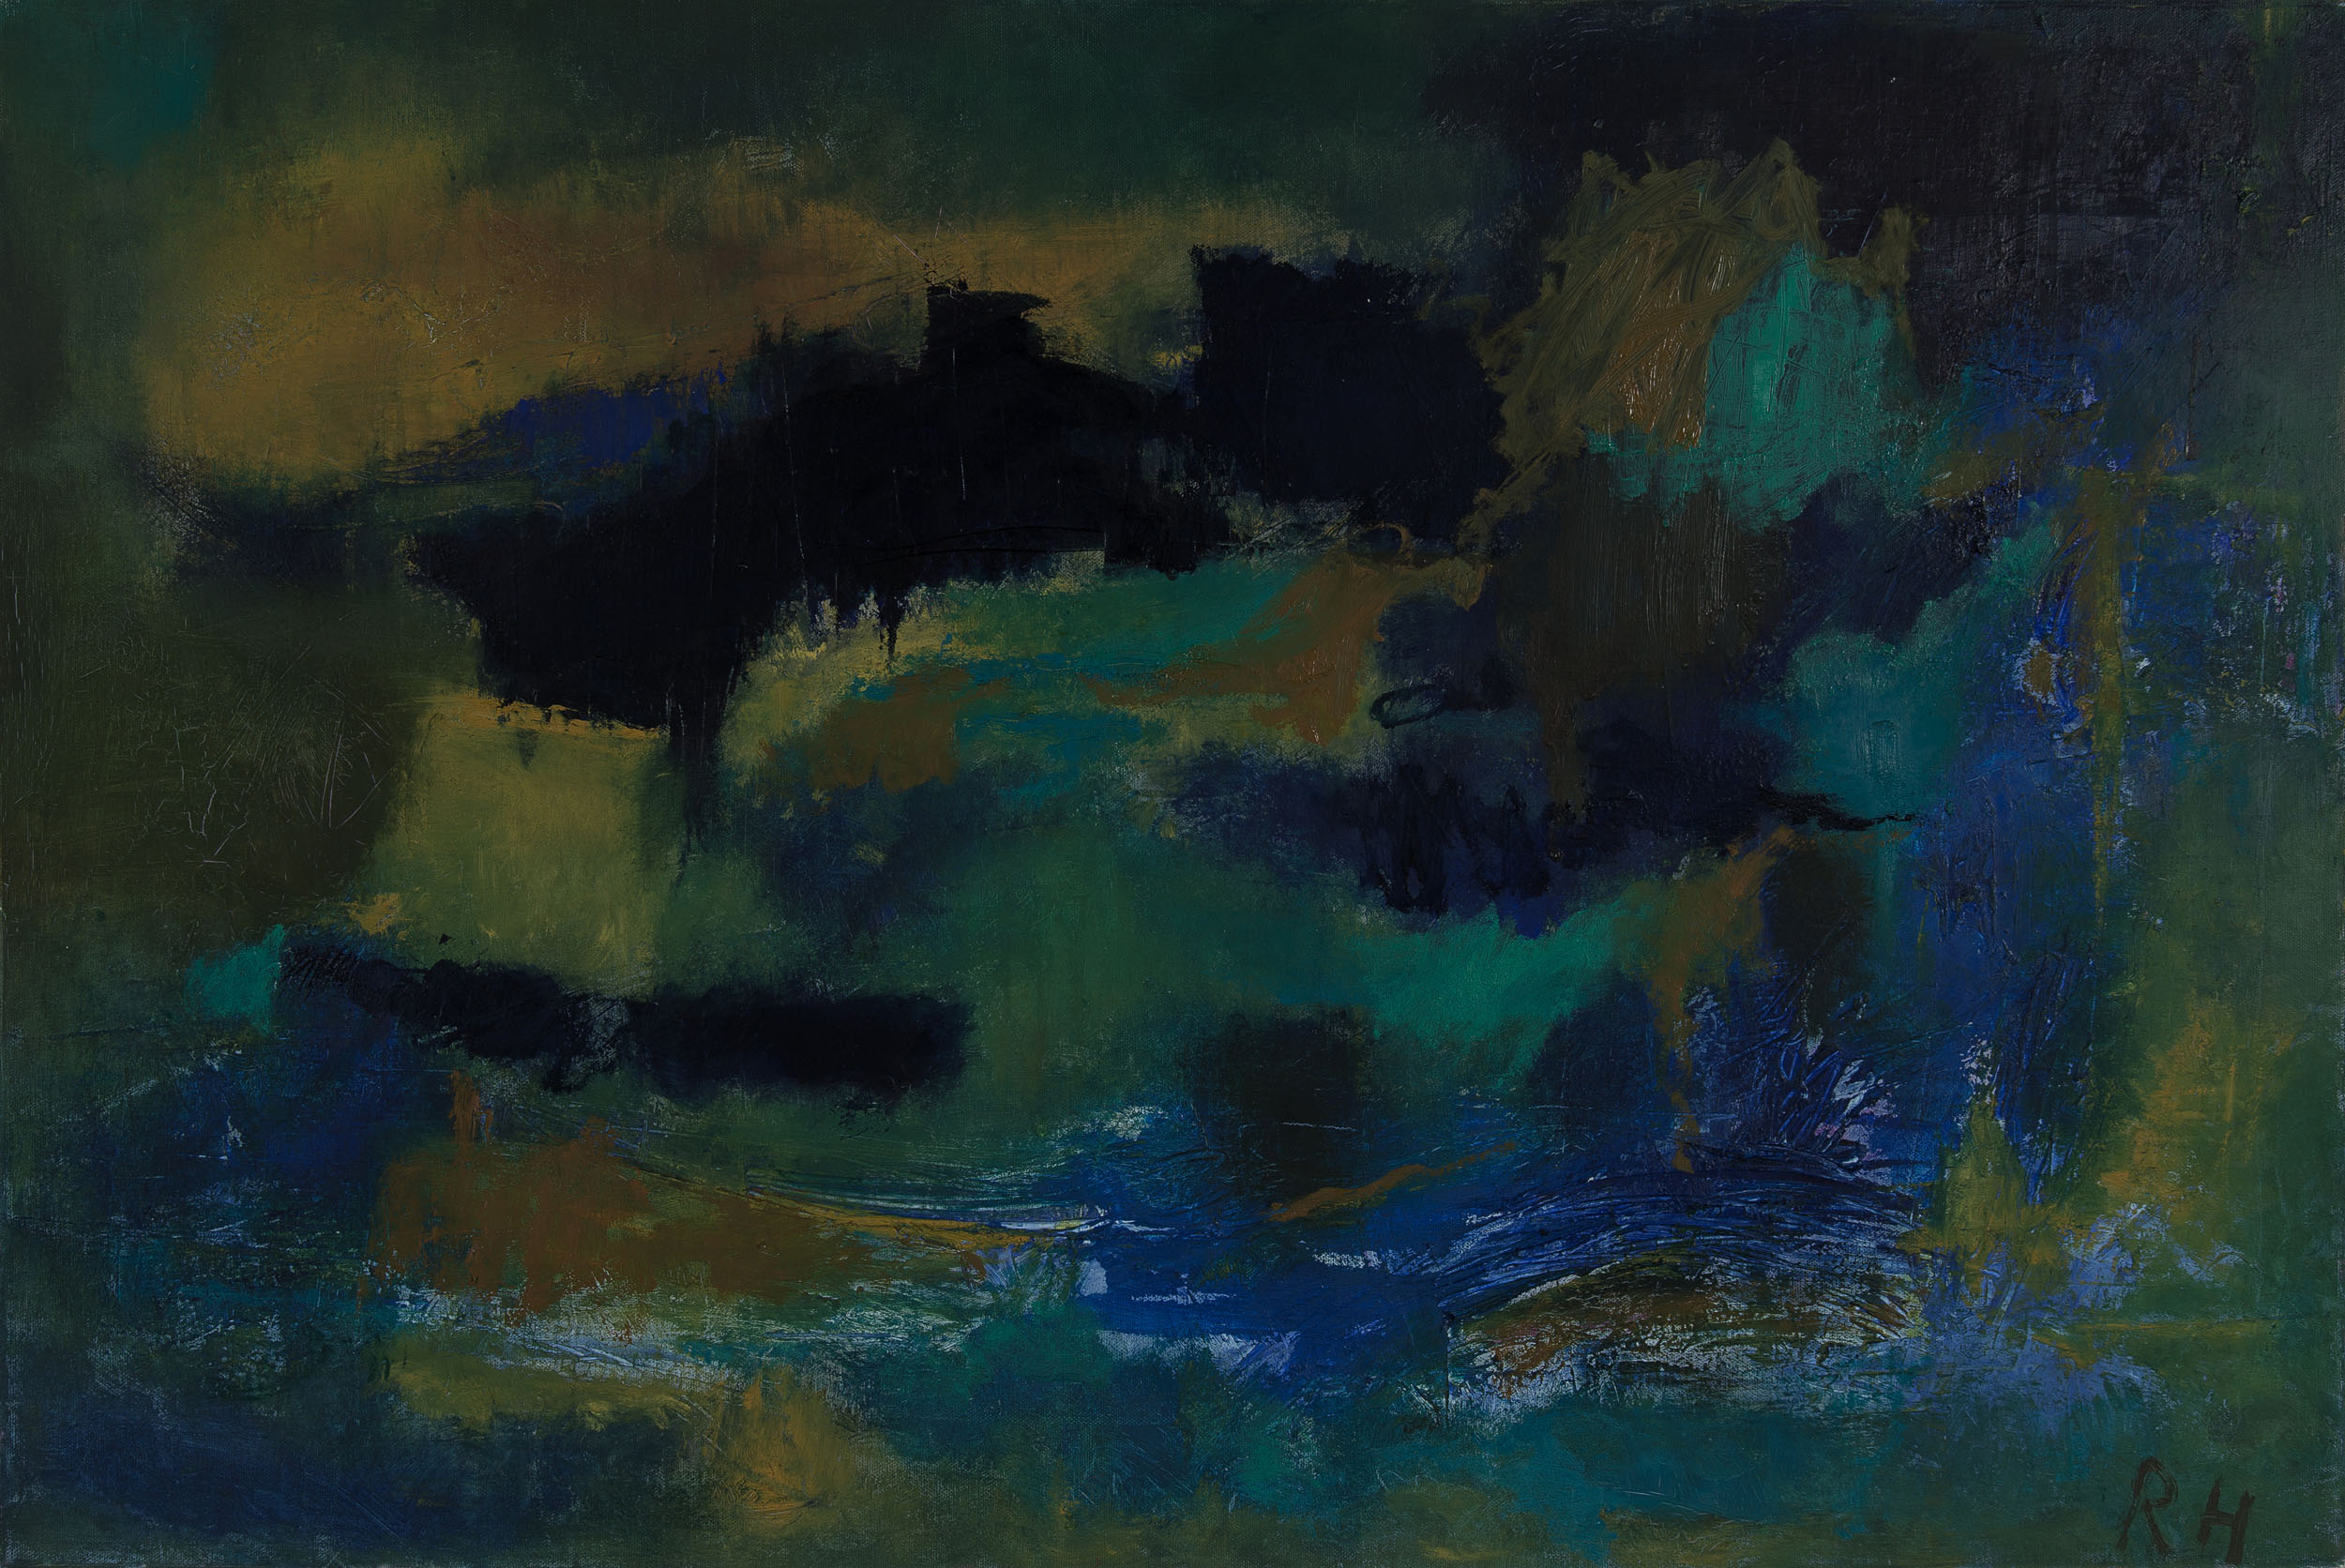 Kind of blue #2, 2015, oil on canvas, 24 x 36 inches